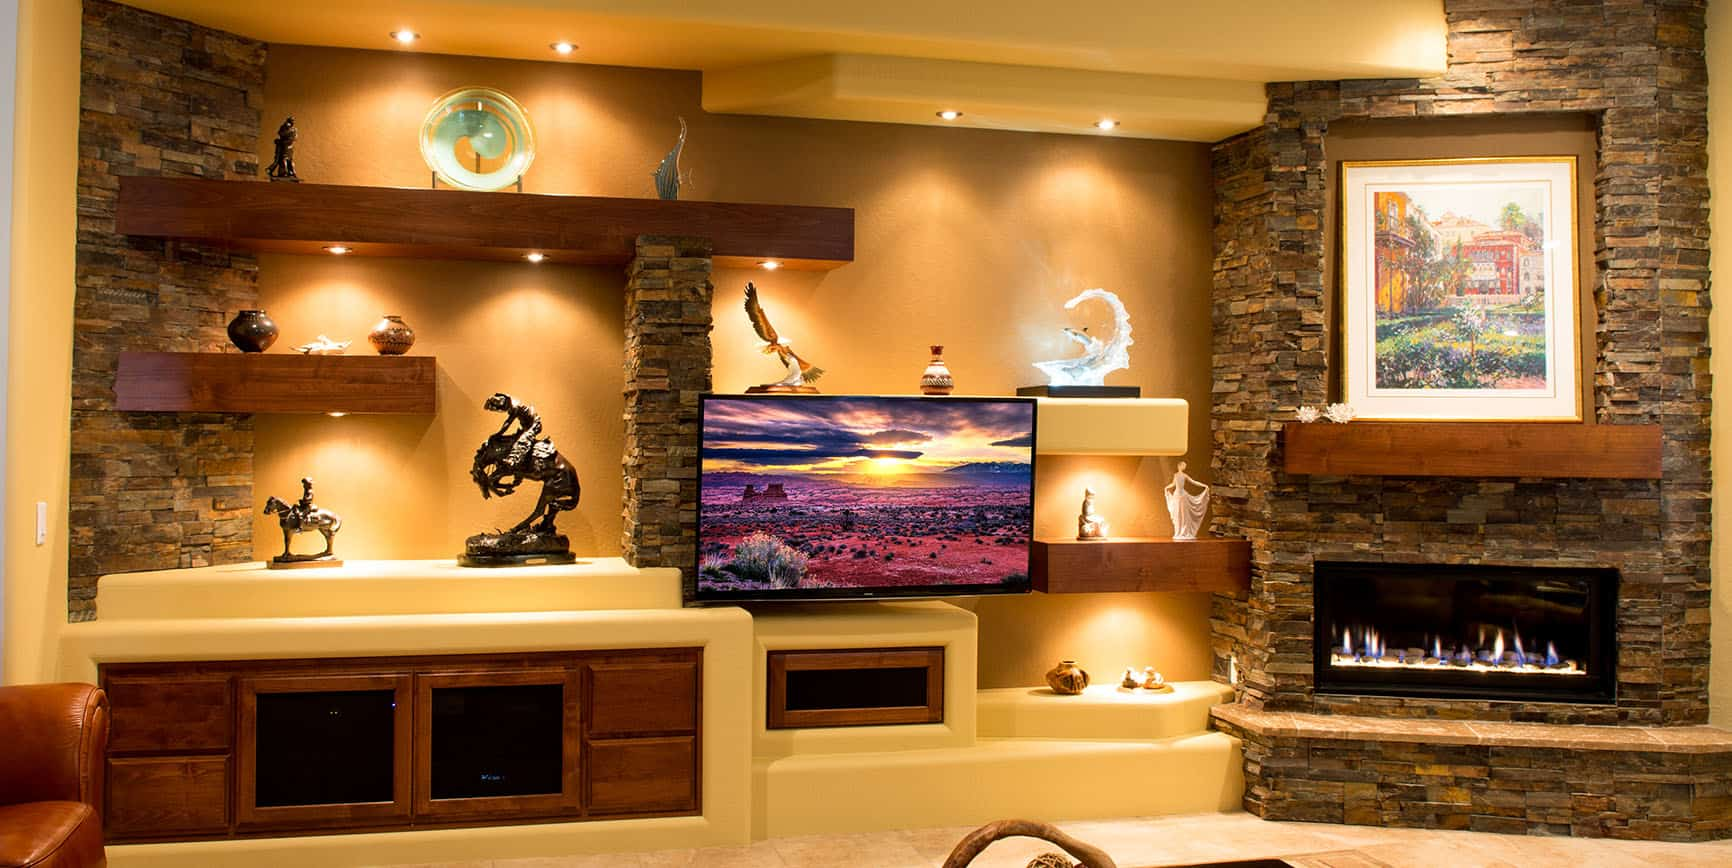 Media Room Designs With Fireplace